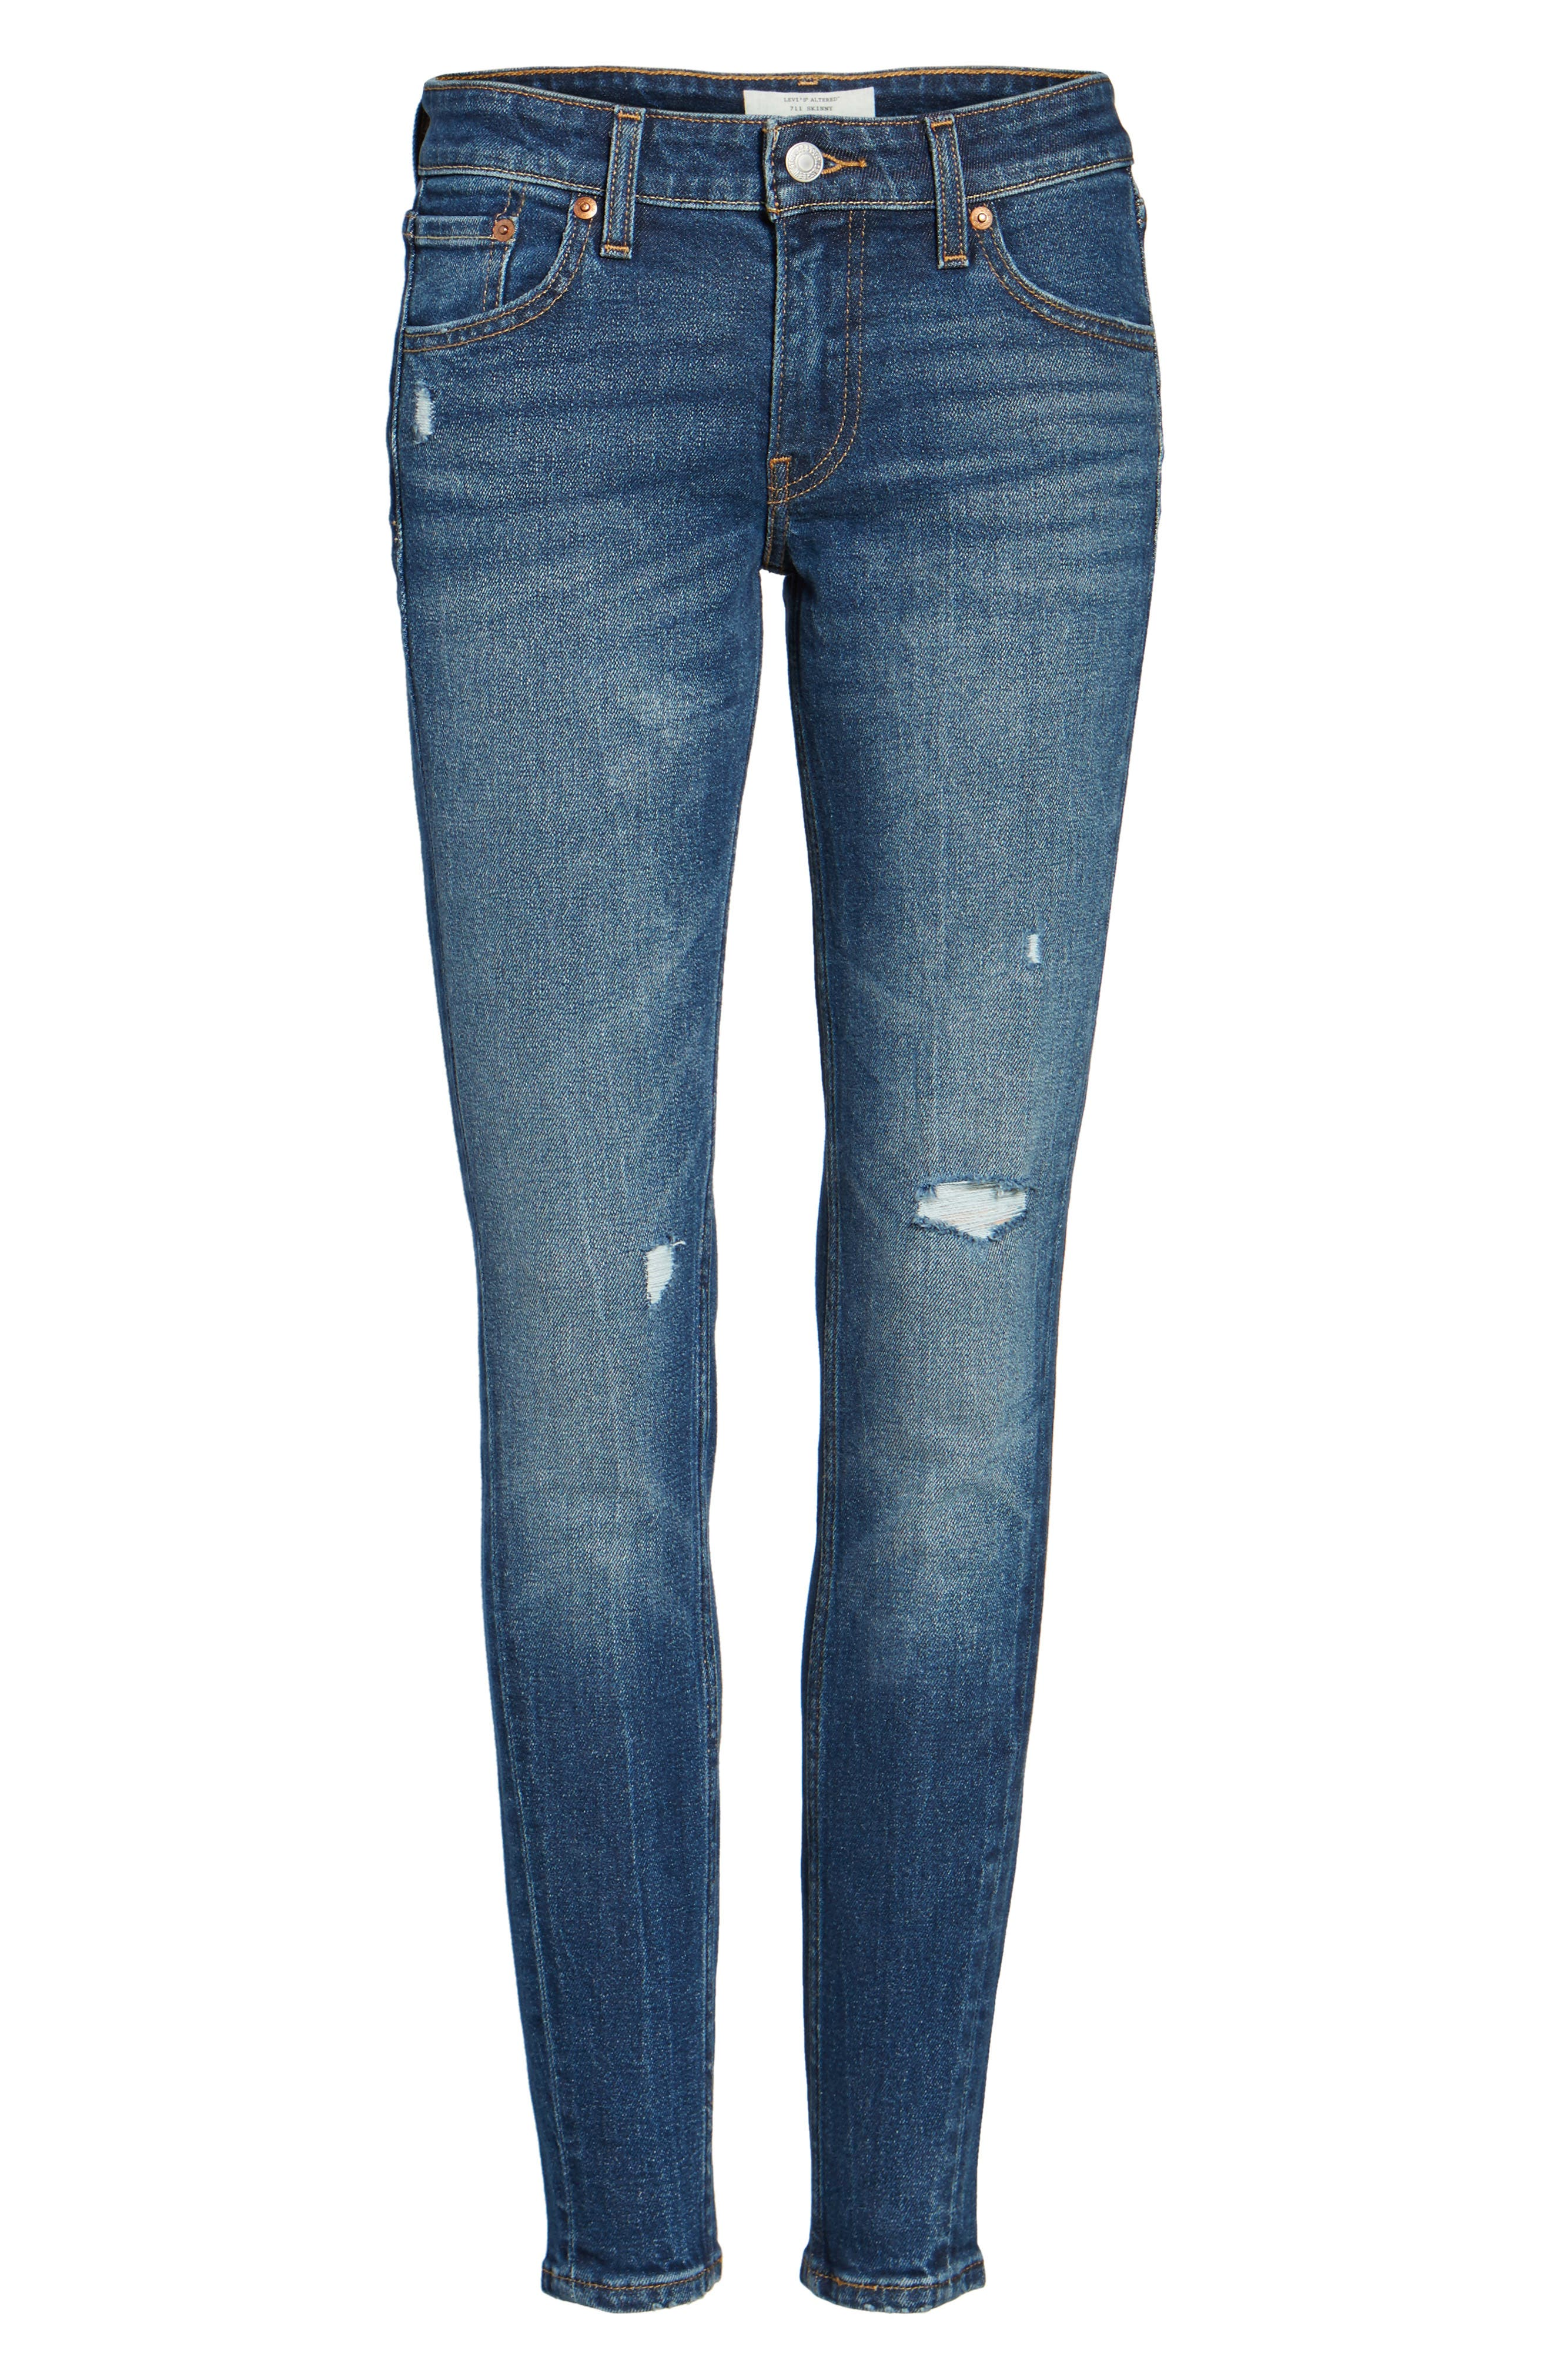 711 Ripped Skinny Jeans,                             Alternate thumbnail 6, color,                             421